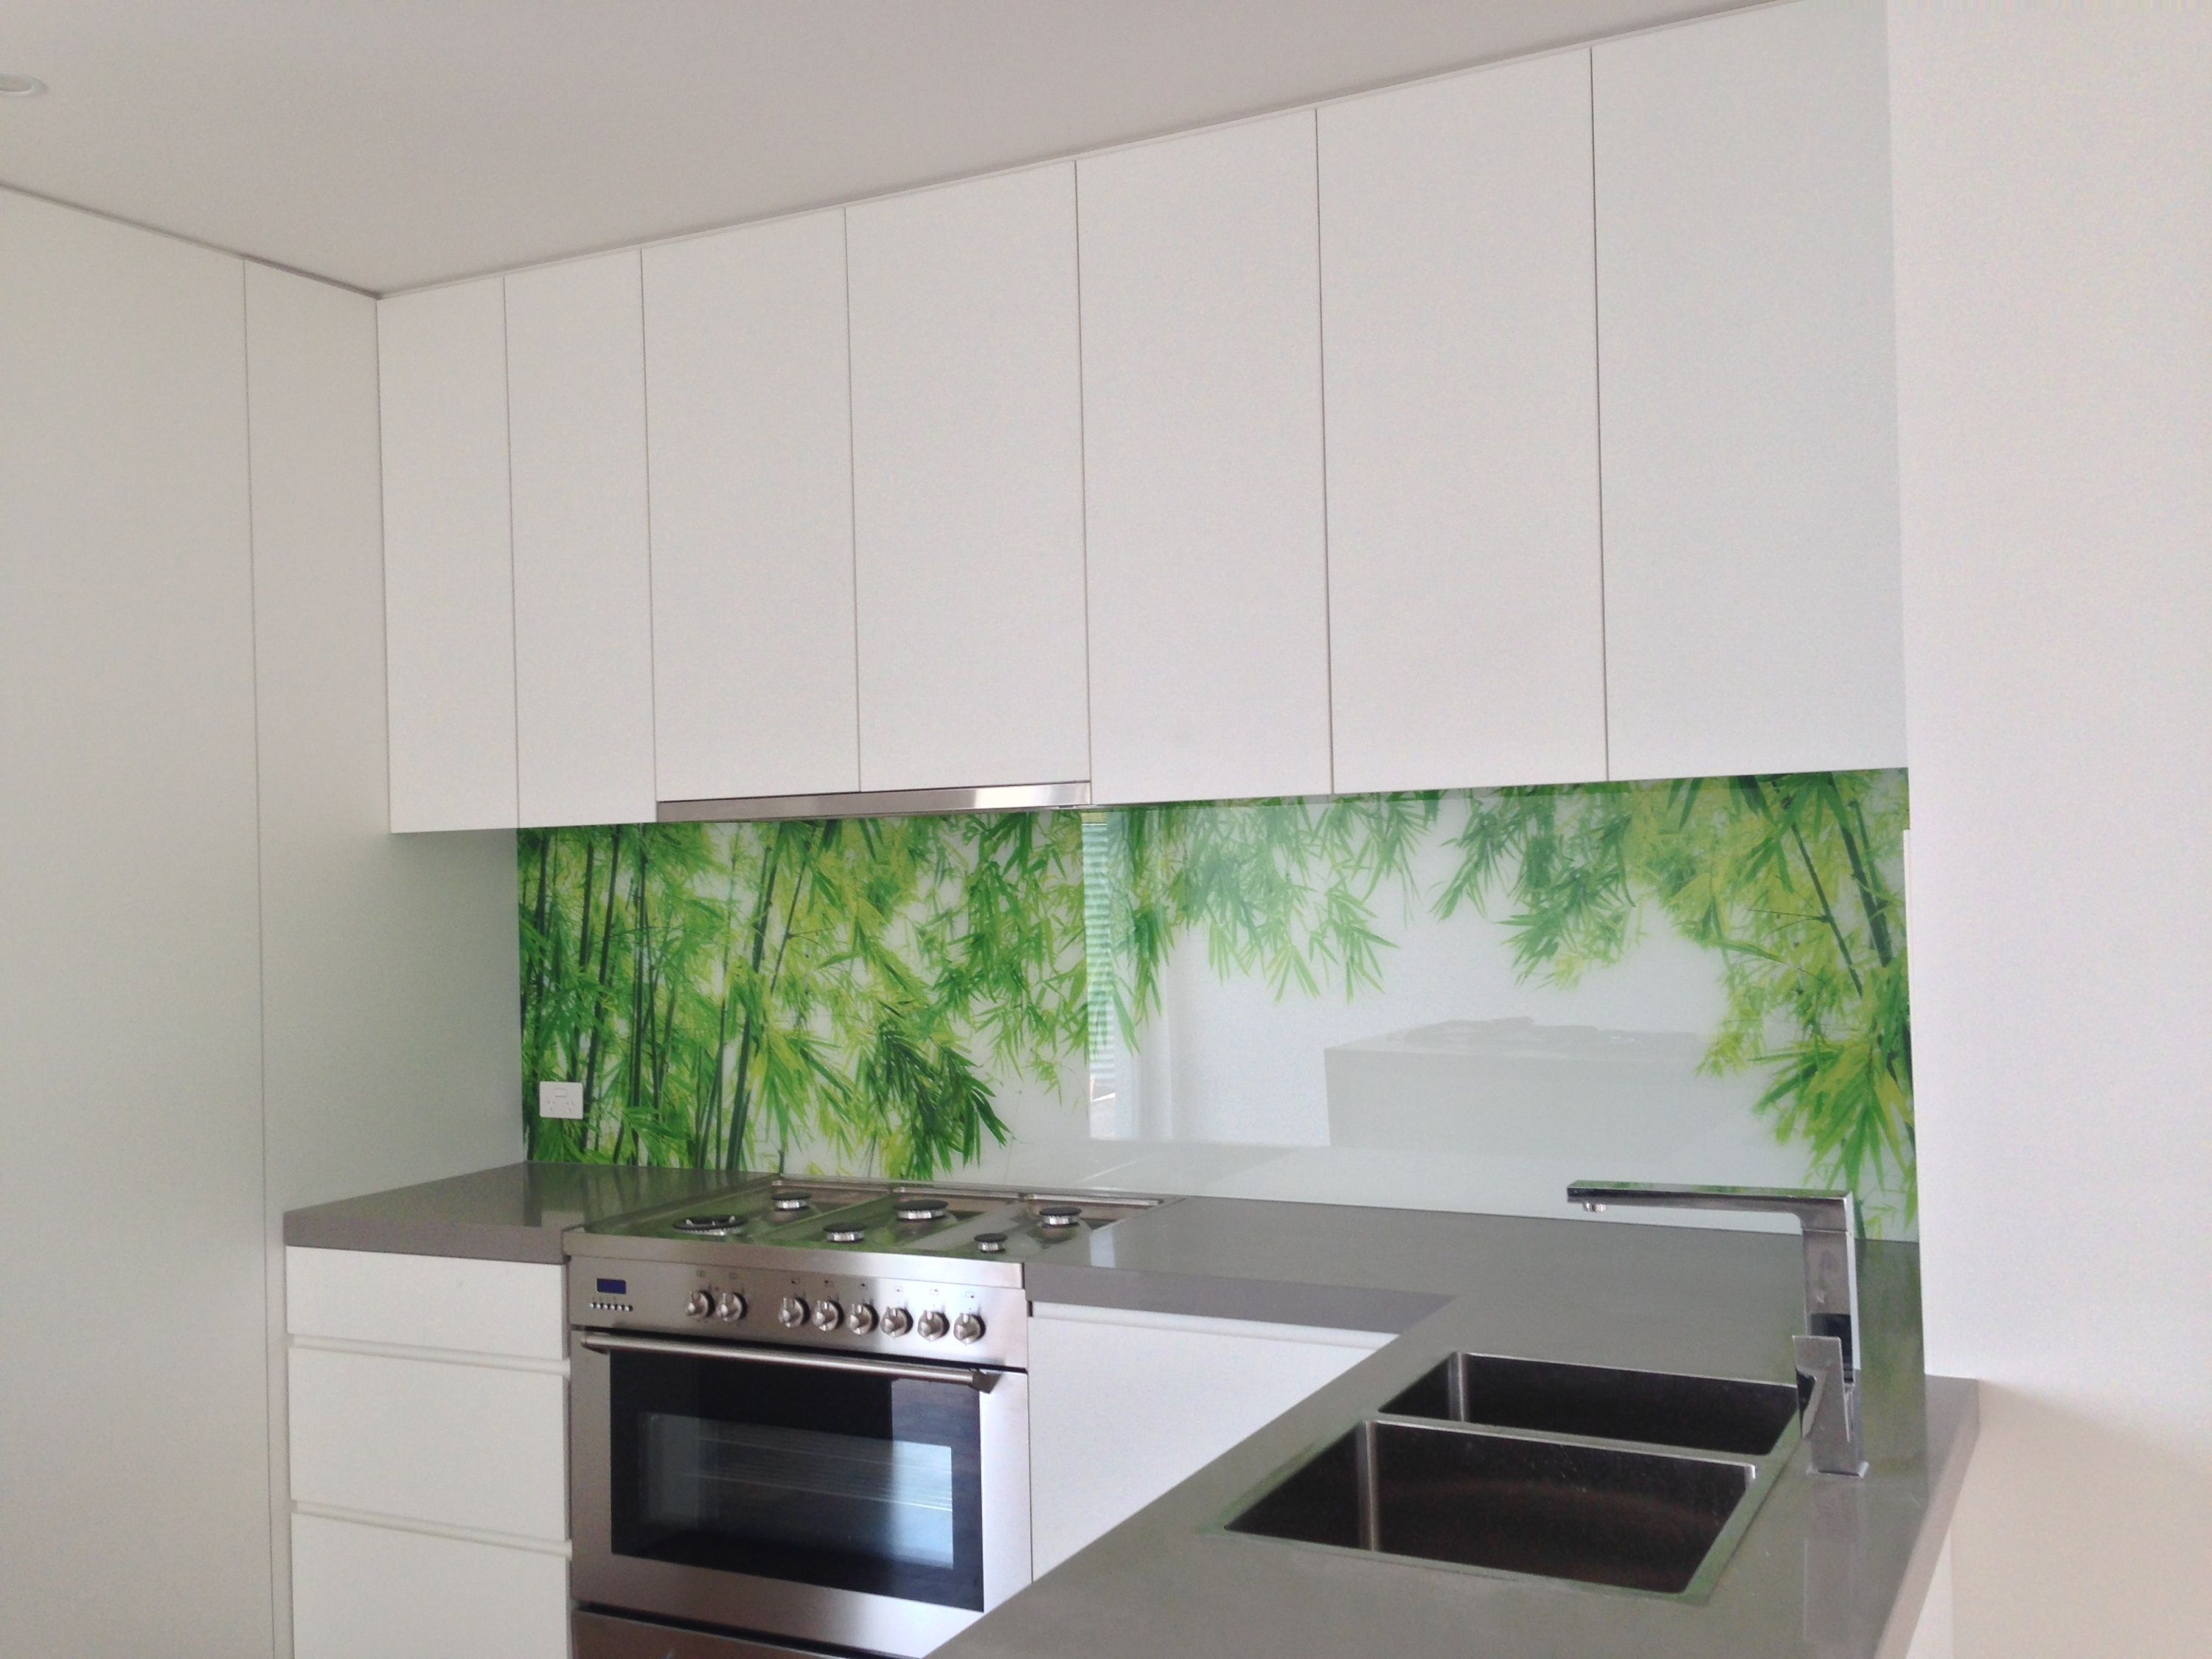 Kitchen make your kitchen dazzle with pertaining to kitchen design - Digitally Printed Glass Splashbacks From Ultimate Glass Splashbacks Tullamarine Find This Pin And More On Kitchen